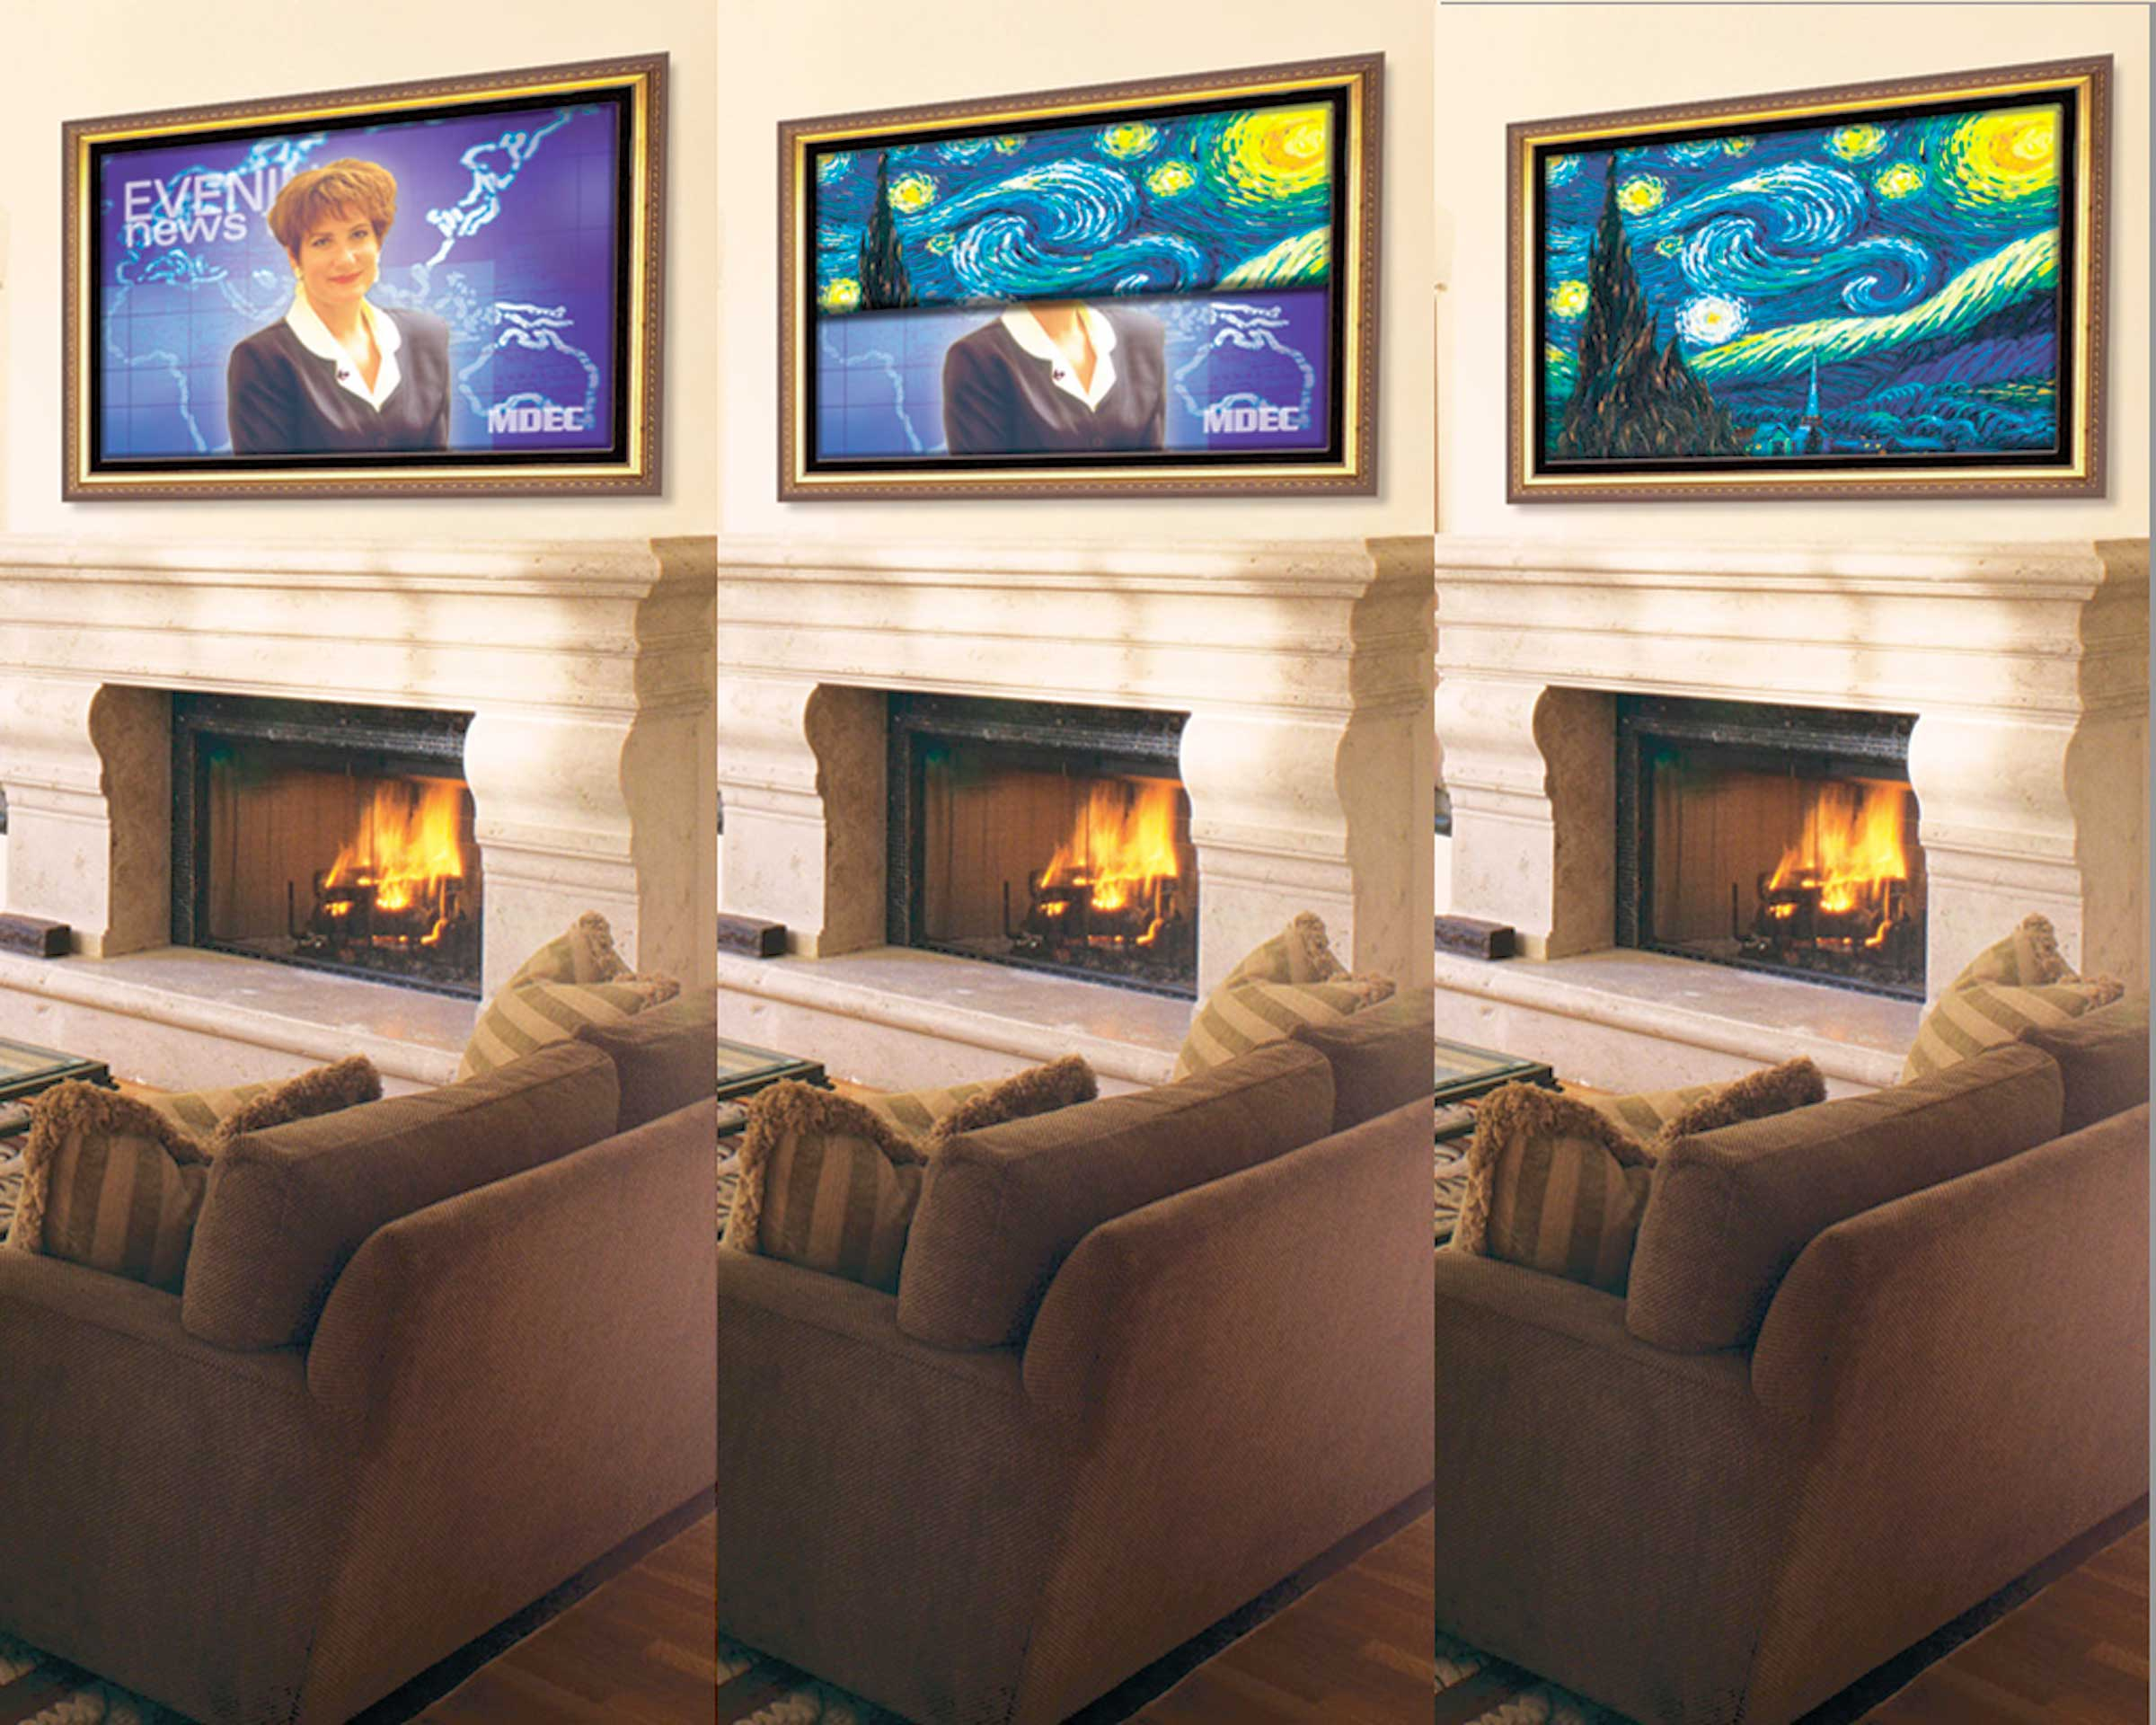 Stewart Filmscreen Introduces Stewart Media Décor, a New System to Display Art in Media-Centric Rooms